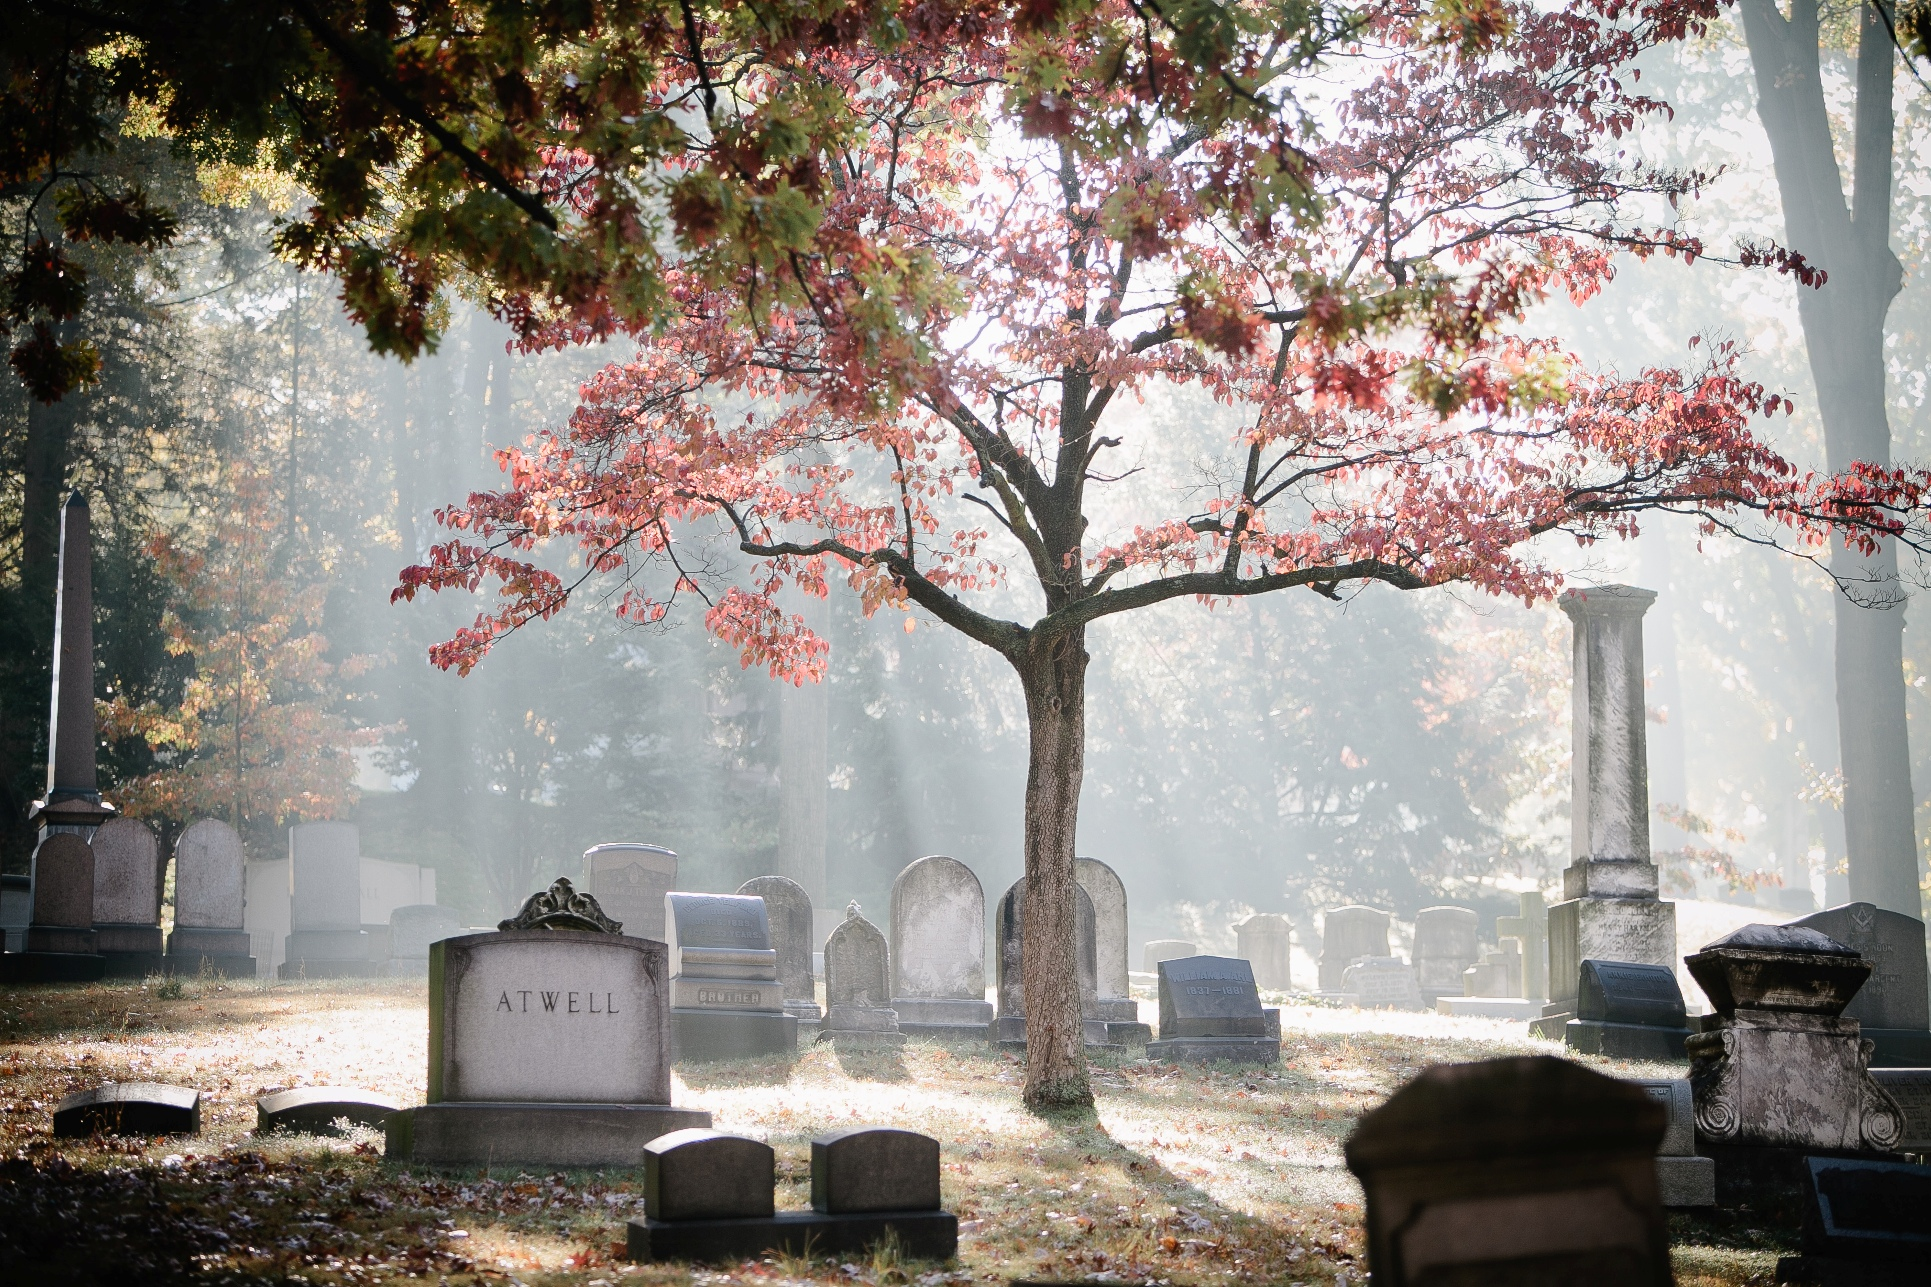 Allegheny Cemetery – Allegheny Cemetery Pittsburgh